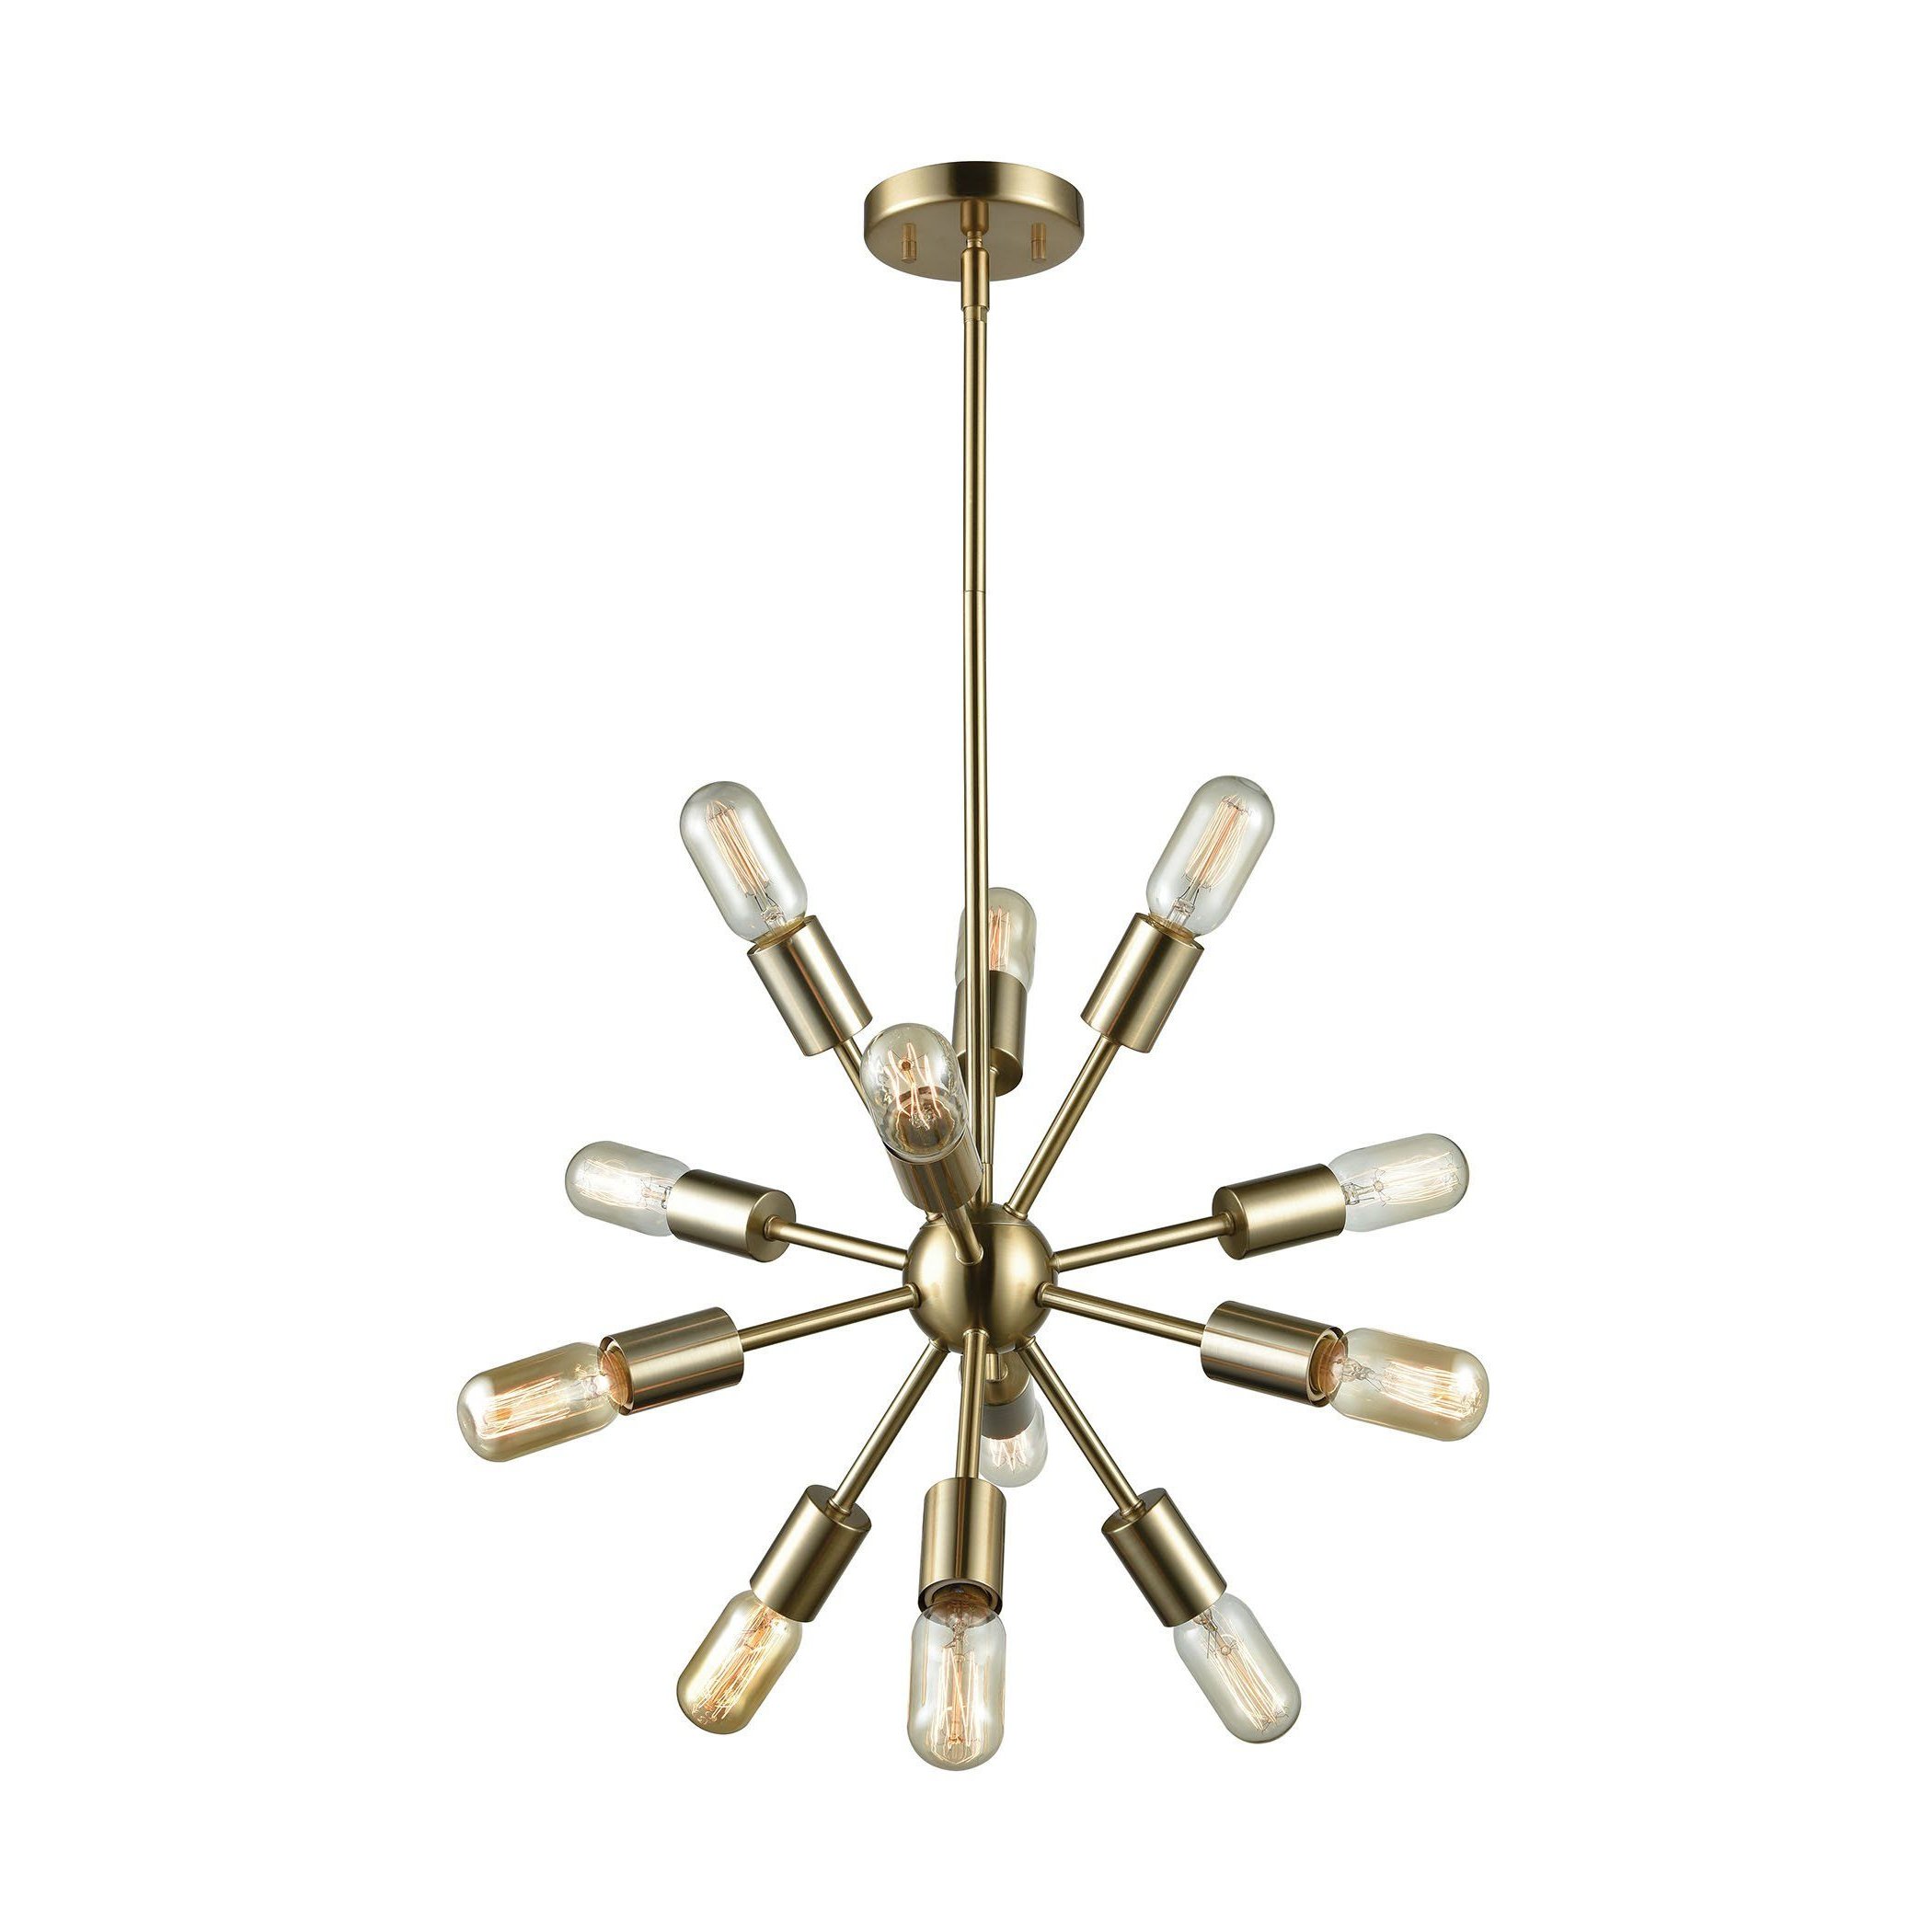 Corona 12 Light Sputnik Chandeliers Throughout Best And Newest Delphine 12 Light Chandelier In Satin Brass (View 10 of 25)